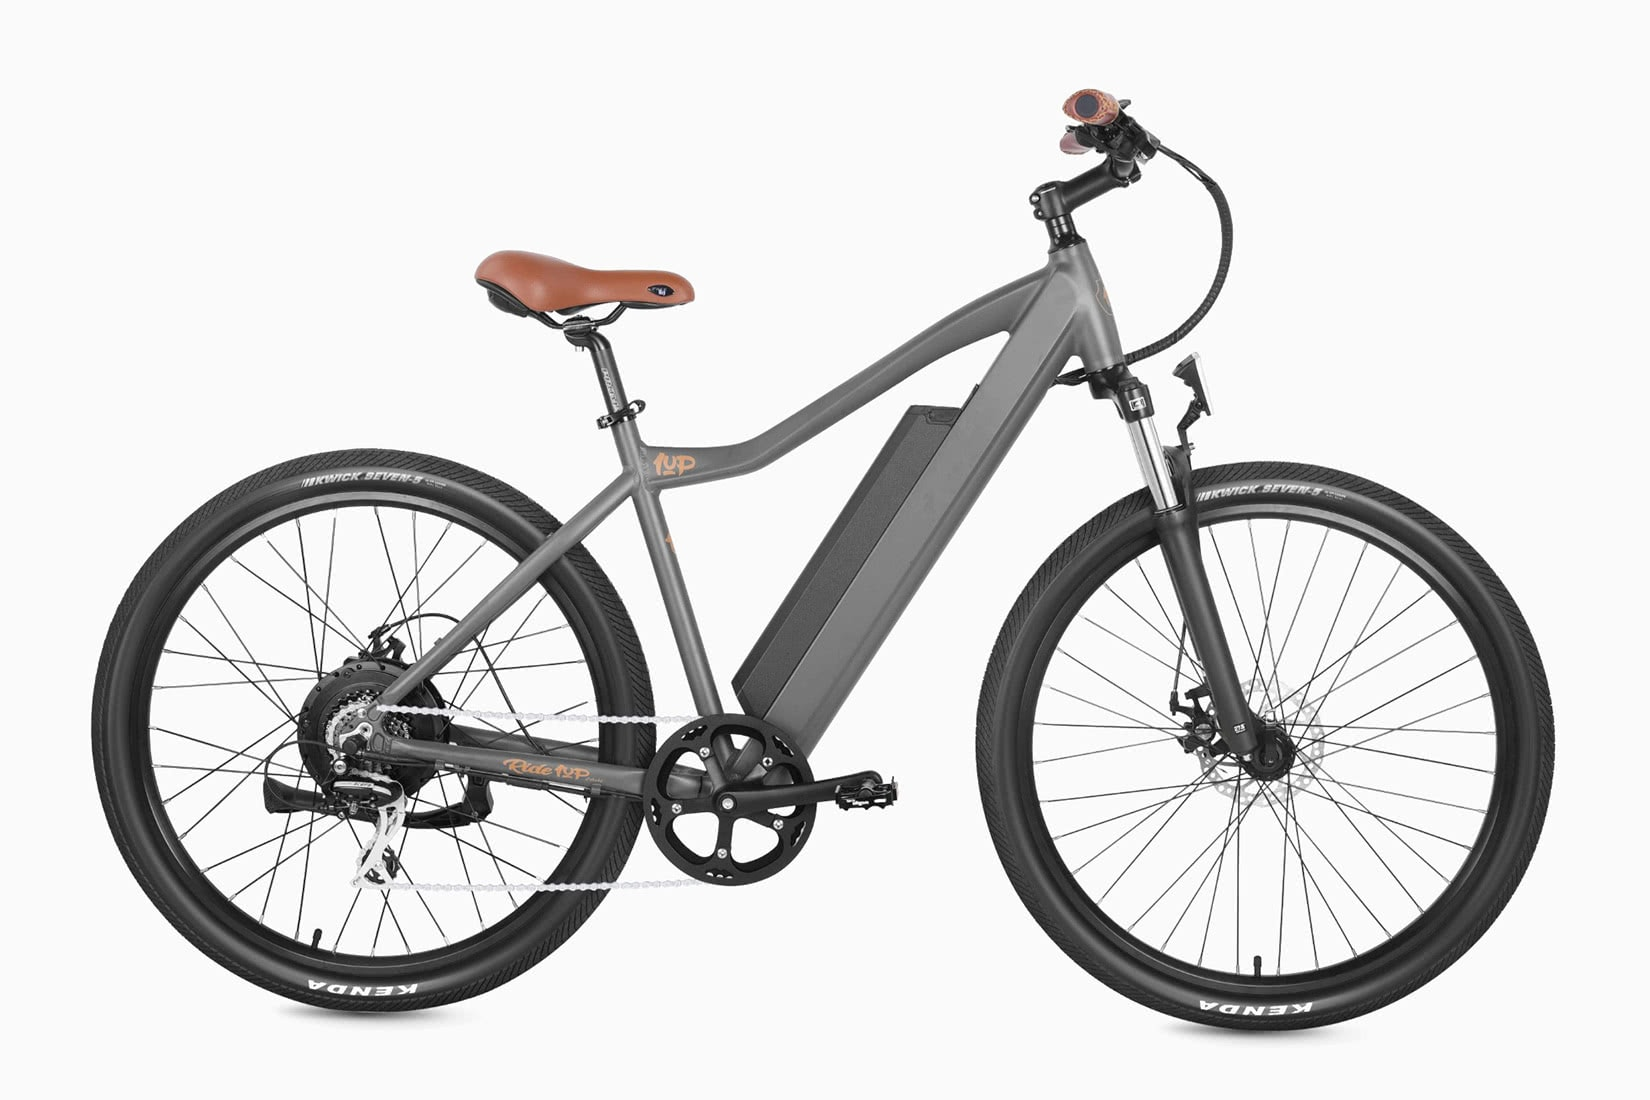 best electric bikes lightweight ride1up 500 series review - Luxe Digital